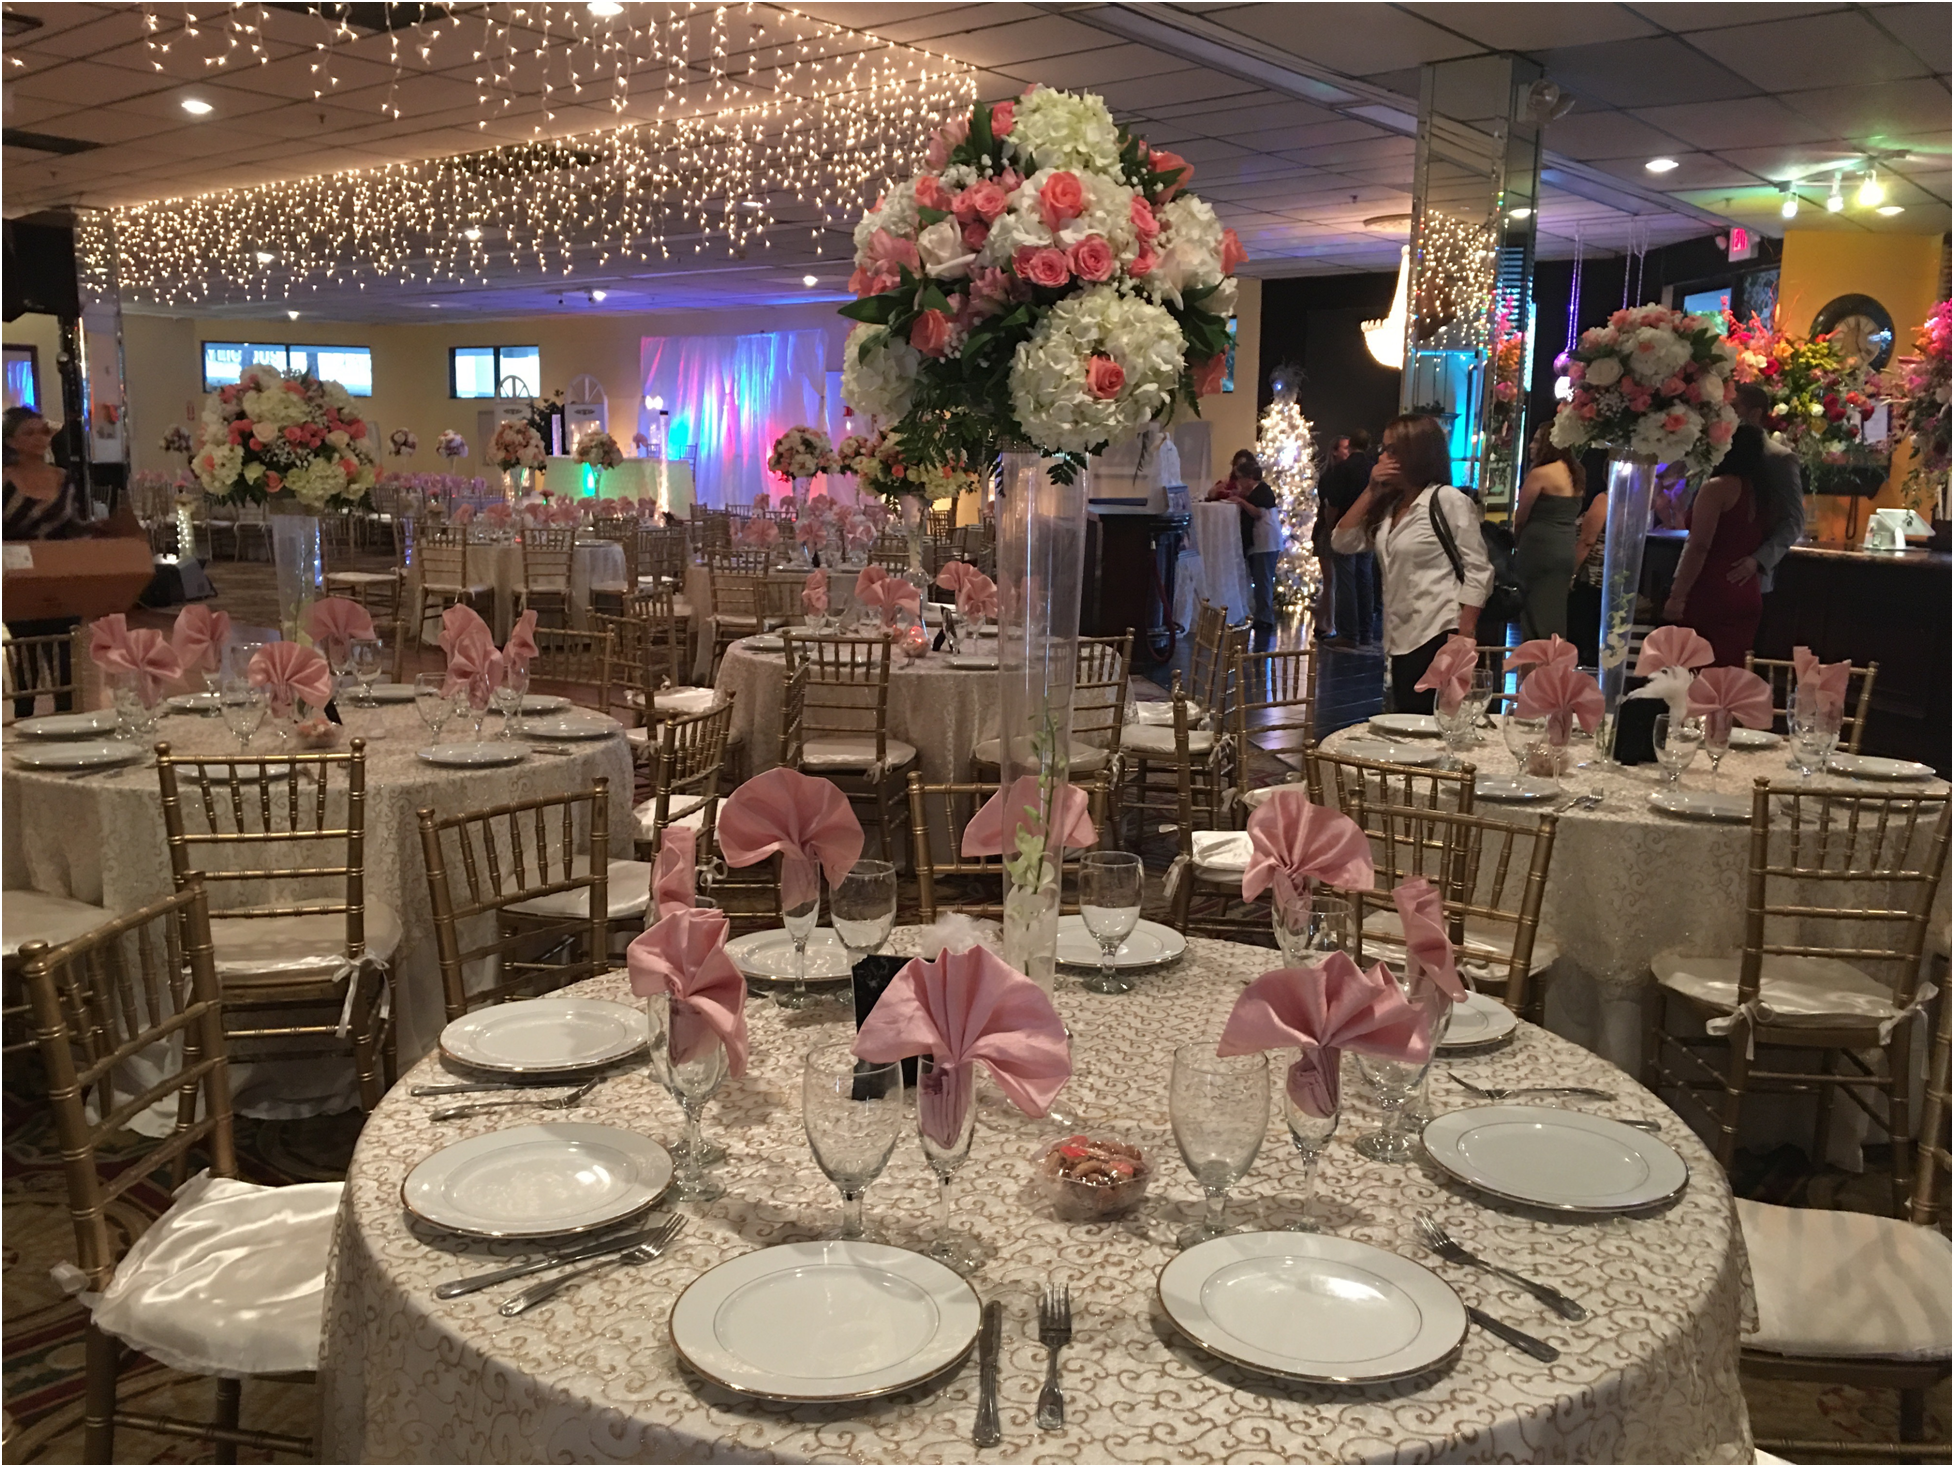 Goldcoast Ballroom - A Magnificent Venue for Your Wedding or Special Occasion